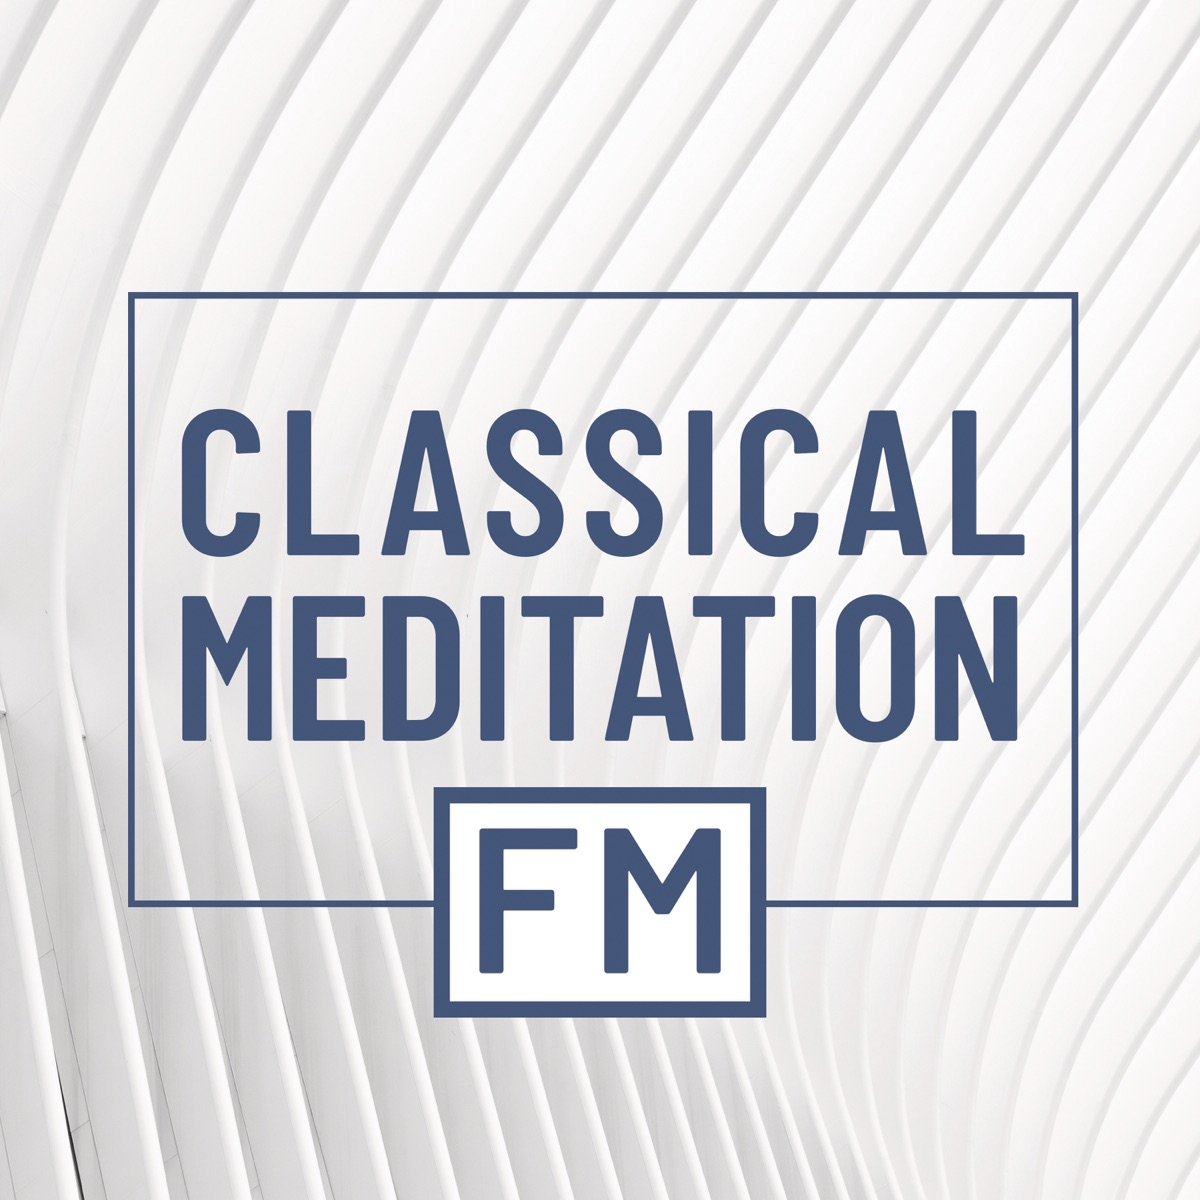 Classical Meditation FM Various Artists CD cover